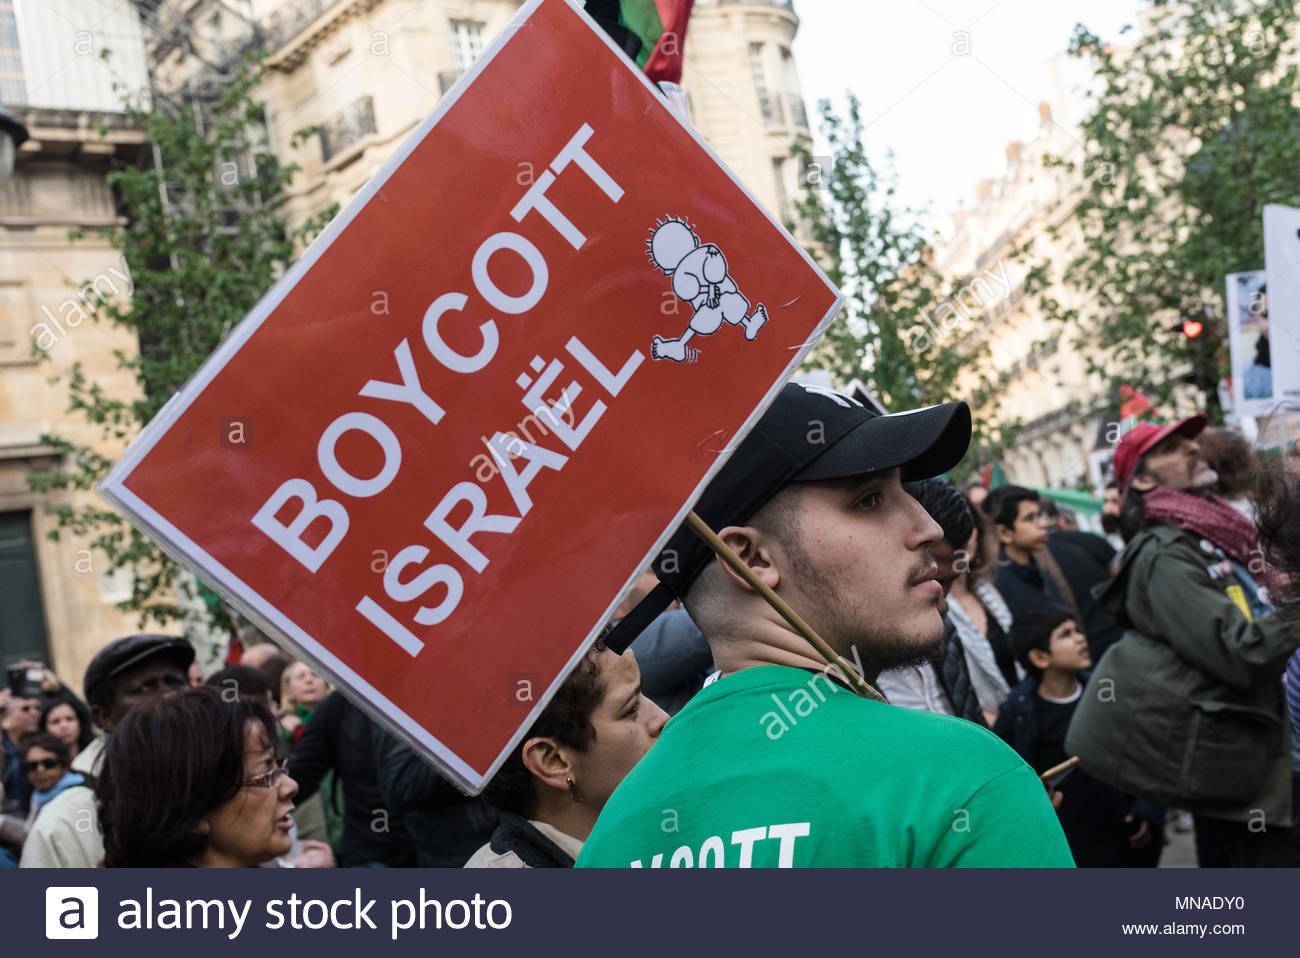 Paris, France. 15th May, 2018. A protester holds a sign reading 'Boycott Israel' as Pro-Palestine demonstrators take to the streets of Paris, France on May 15, 2018 during a protest against the killing, the day before, of 59 Palestinians in clashes and protests, on the same day as the United States formally moved its embassy in Israel to Jerusalem from Tel Aviv in defiance of international outrage. (c) copyright Credit: CrowdSpark/Alamy Live News - Stock Image